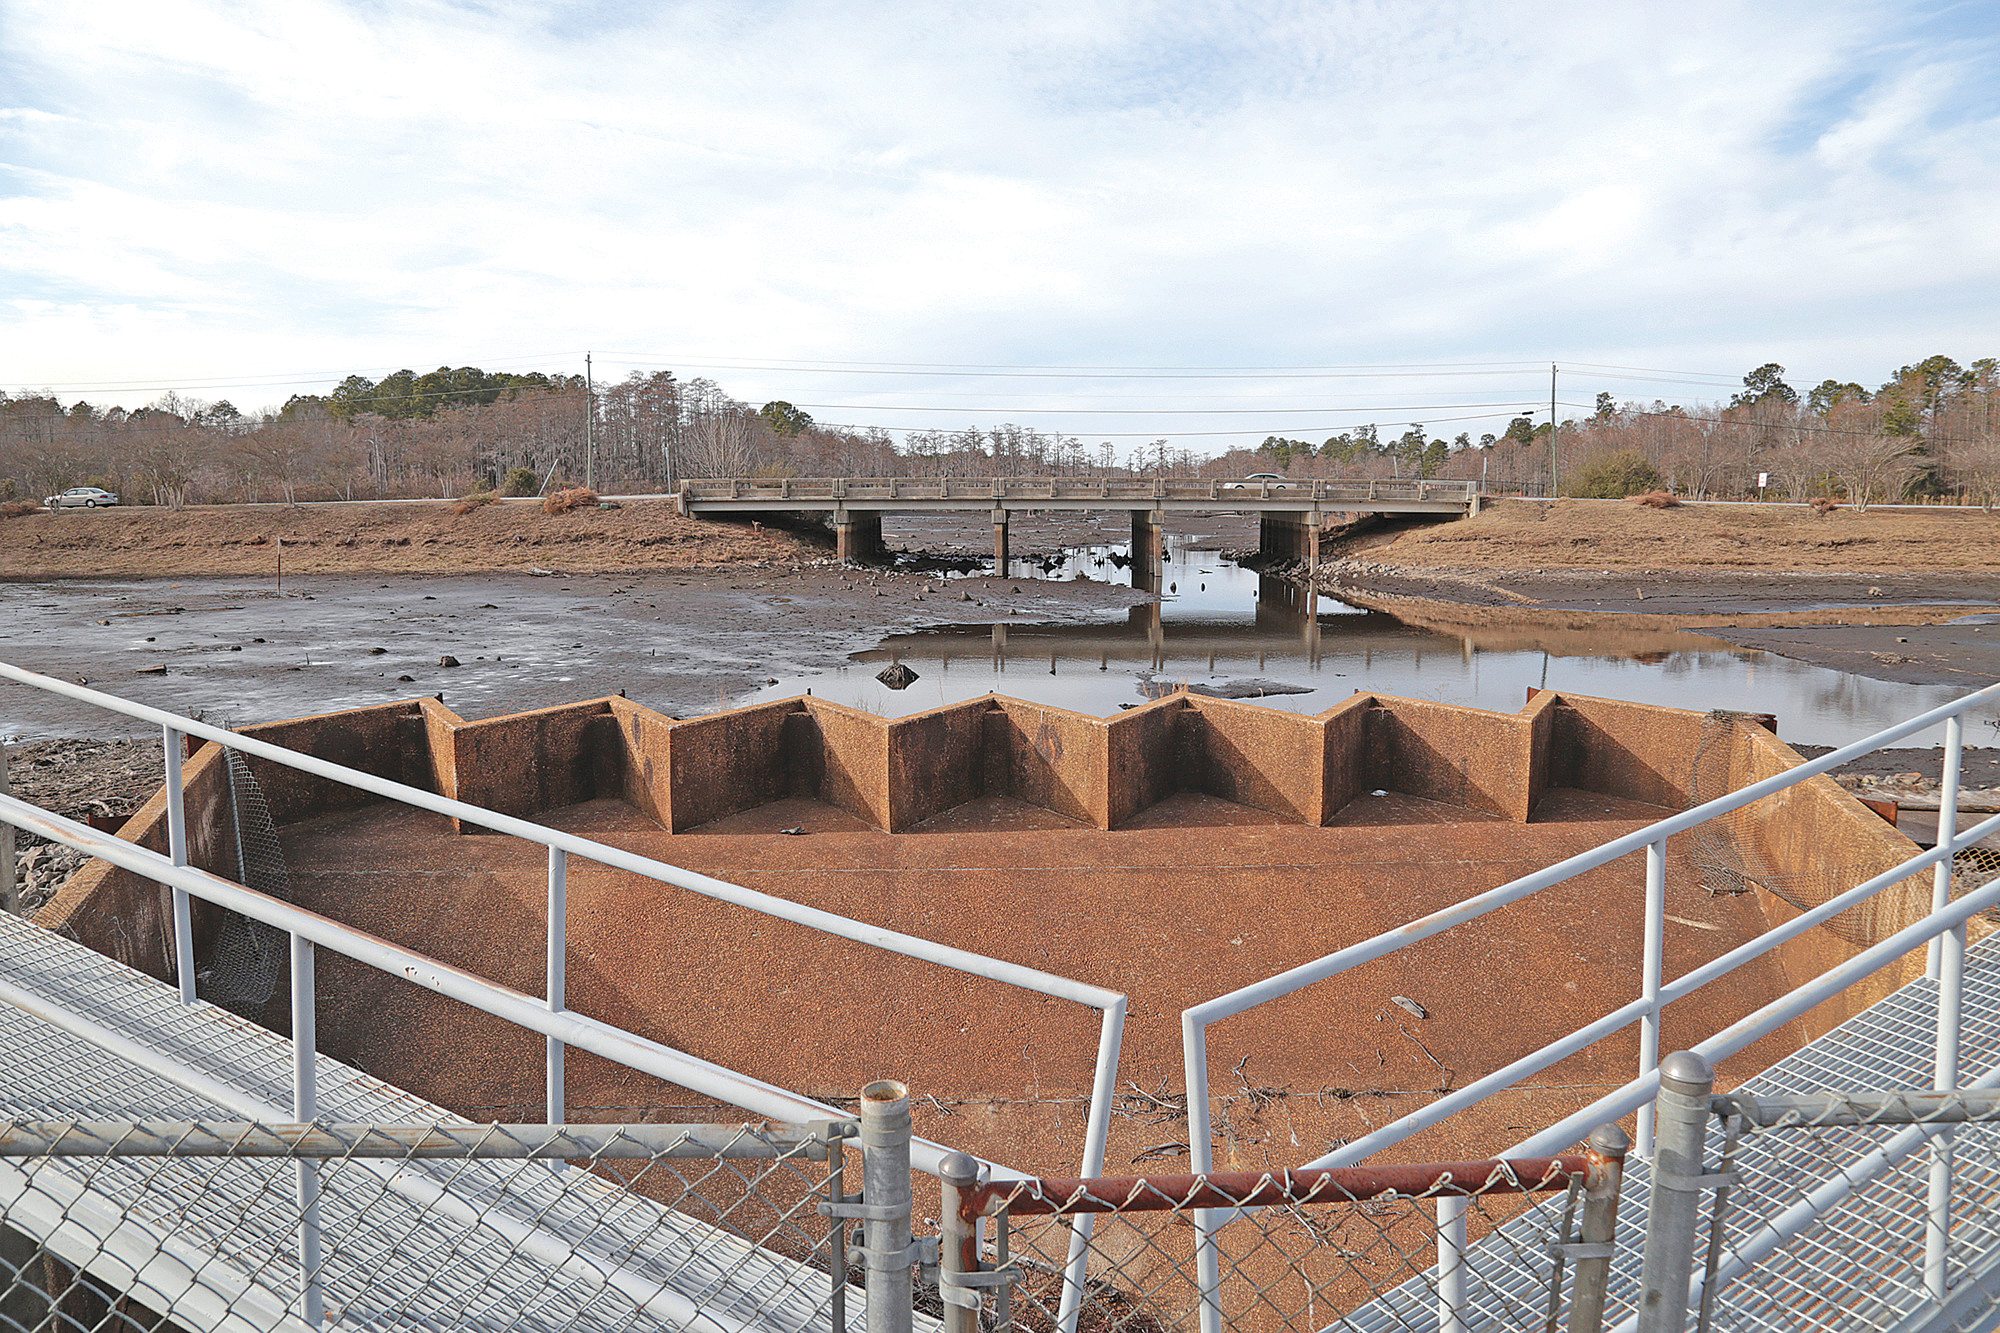 The dam at Second Mill Pond is being repaired after a devastating flood hit the area in 2015, causing damage to the structure.